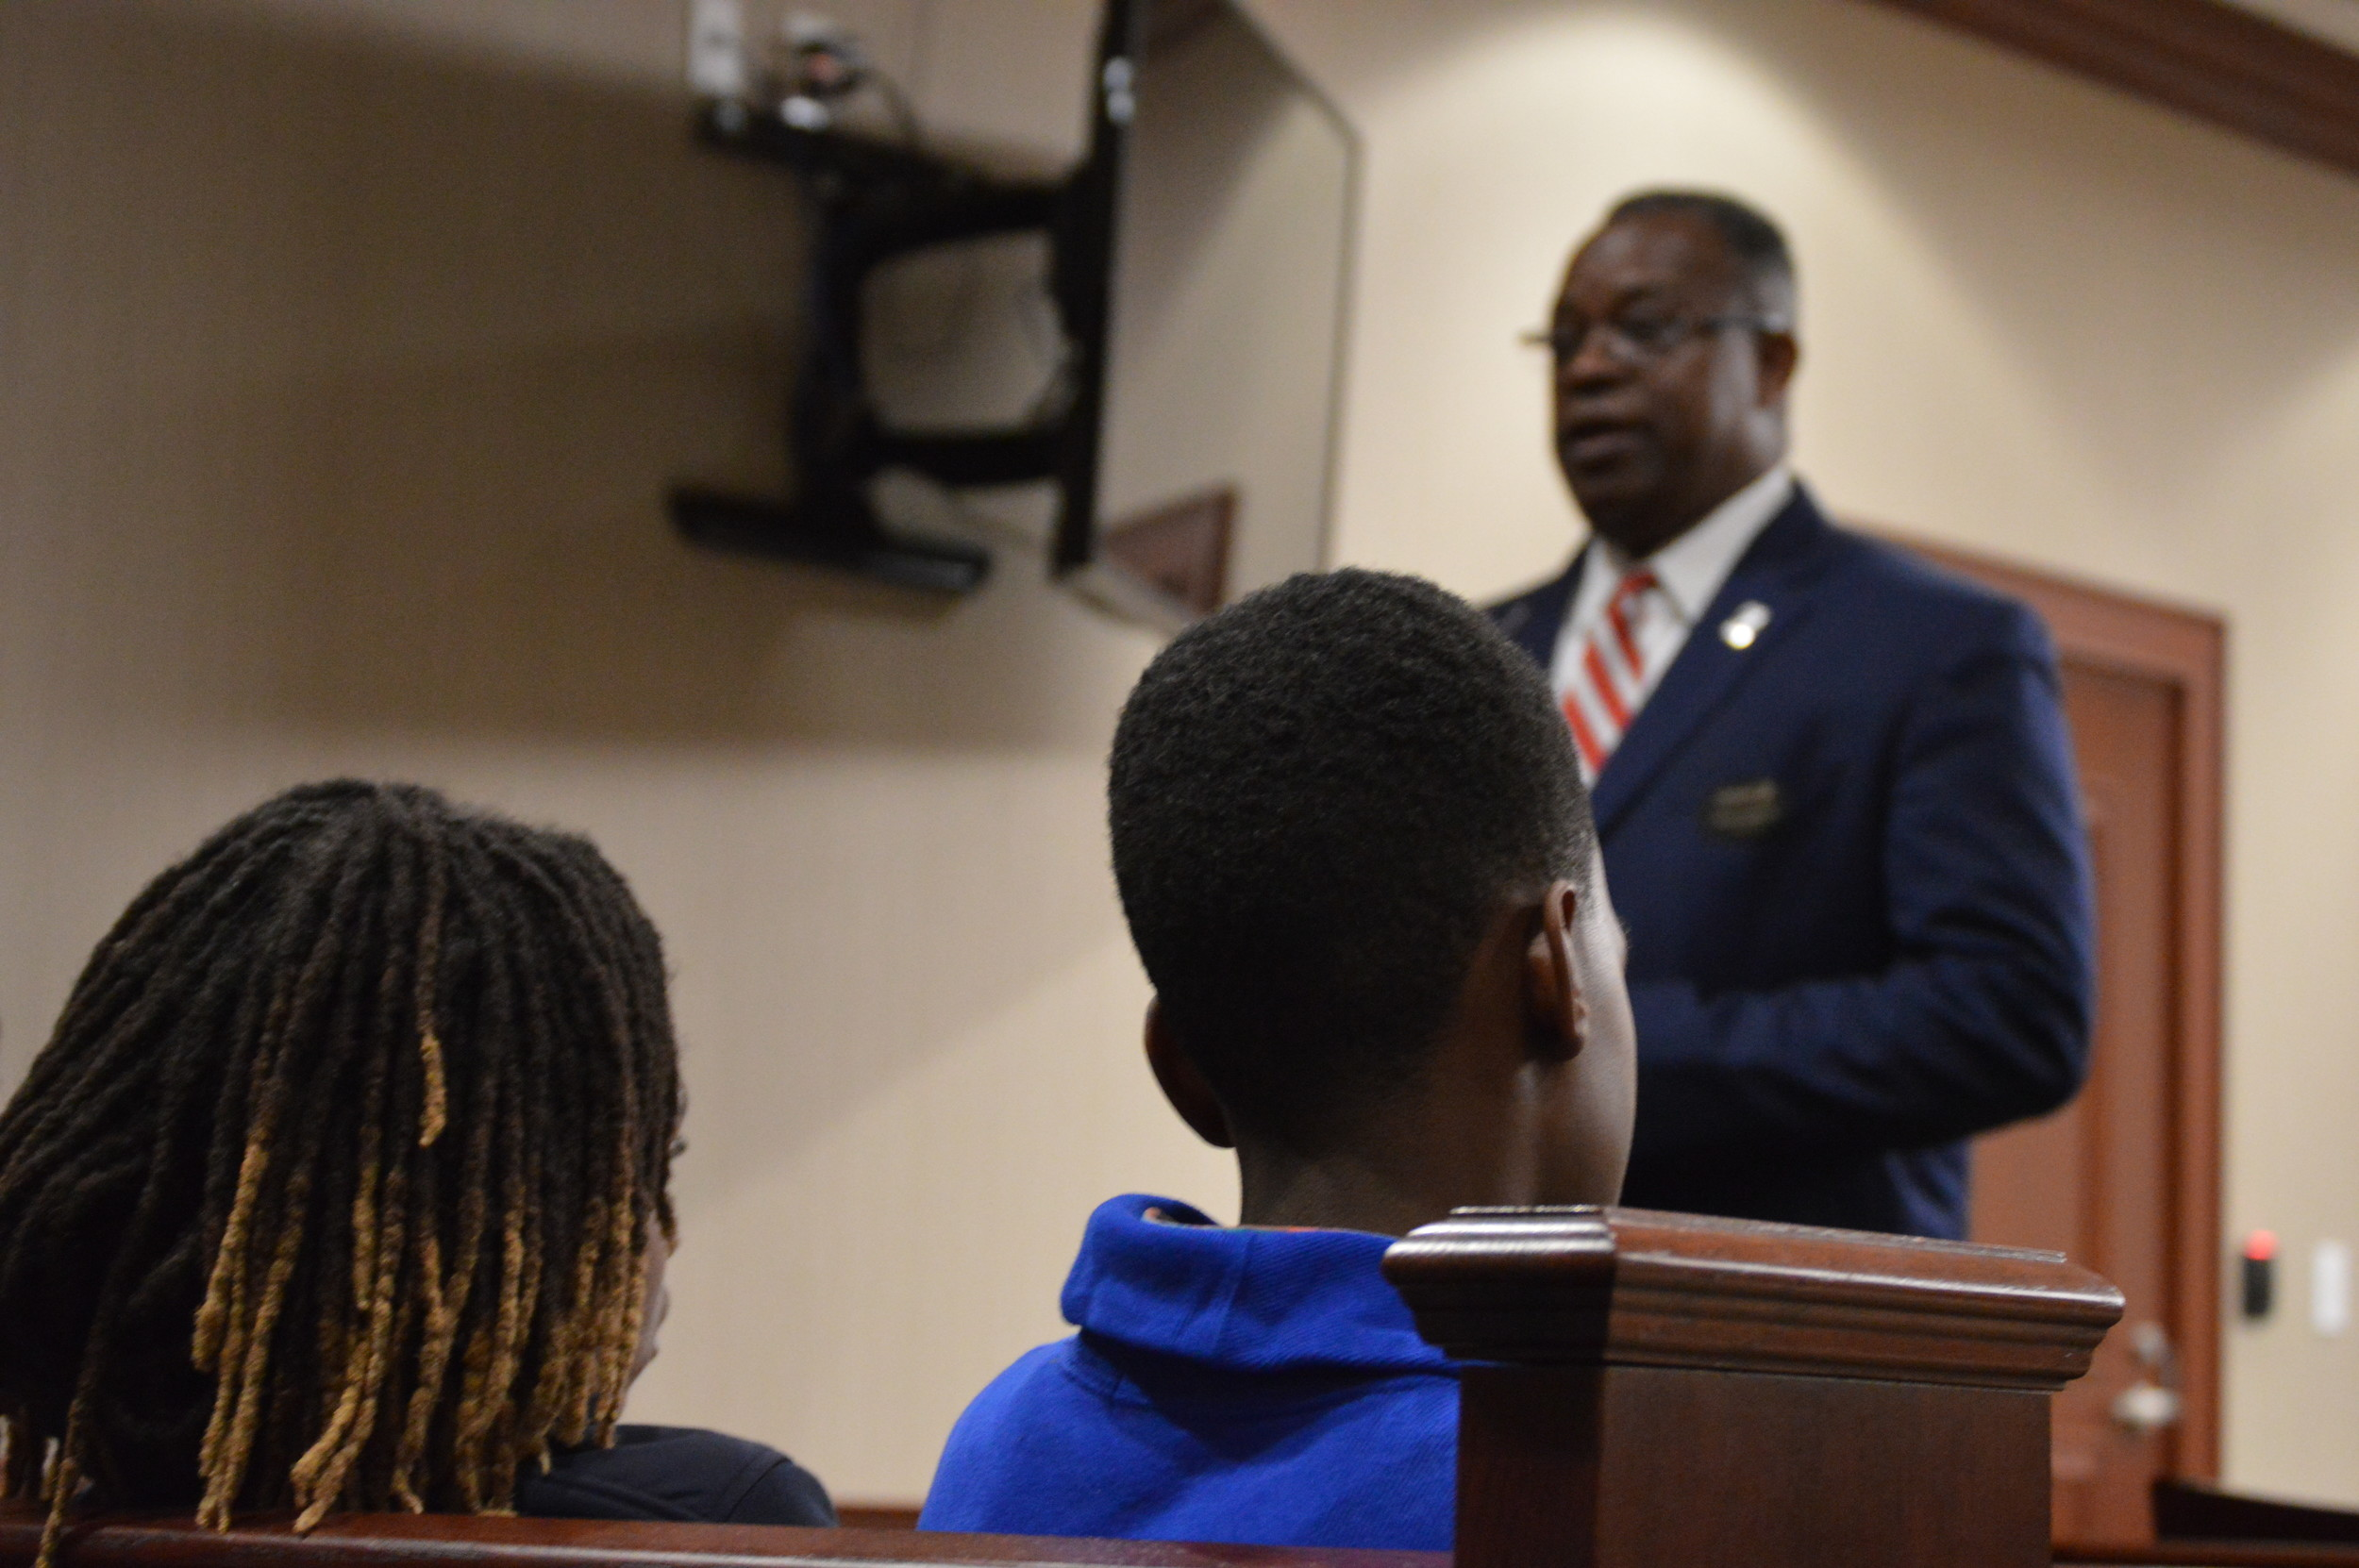 Public defender Calvin Hastie speaks with students from Alice Drive Middle School before a trail involving a juvenile at Sumter County Judicial Center on Thursday.